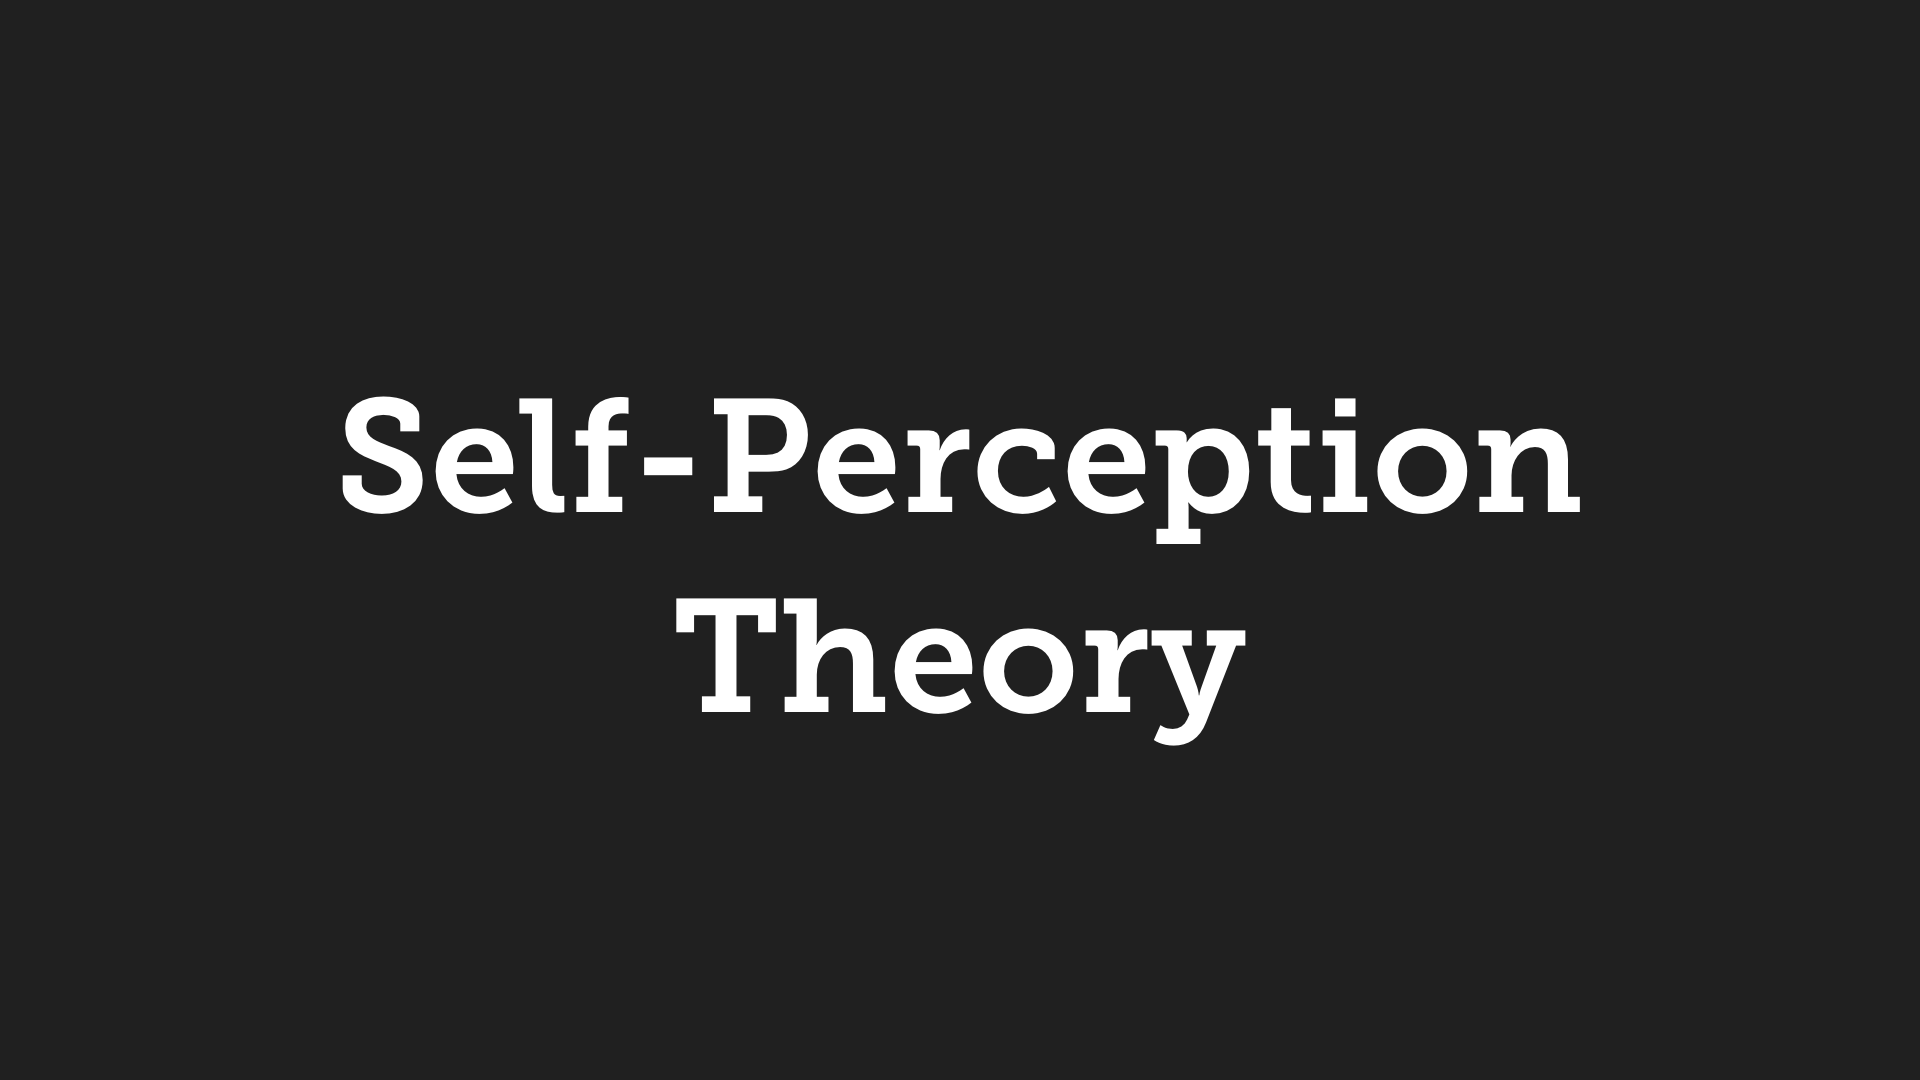 Self-Perception Theory: What You Do Affects What Attitudes You Build